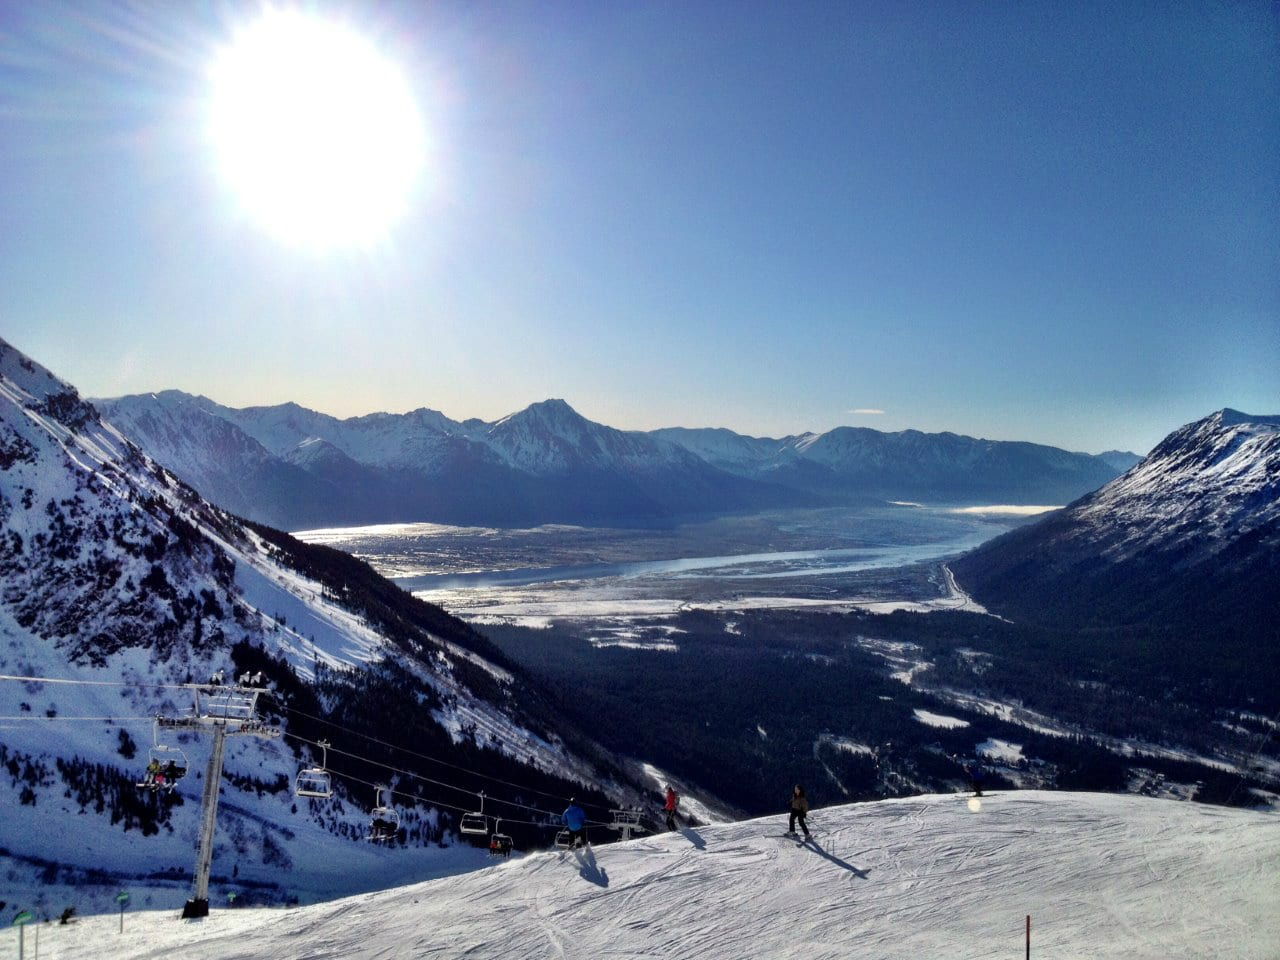 a writers holiday trip to alyeska ski resort in alaska Resorts & lodges there is a spectacular array of alaska fishing and wilderness lodges, affordable family and romantic getaways, not to mention a world-class ski resort located just 40 minutes from downtown anchorage.